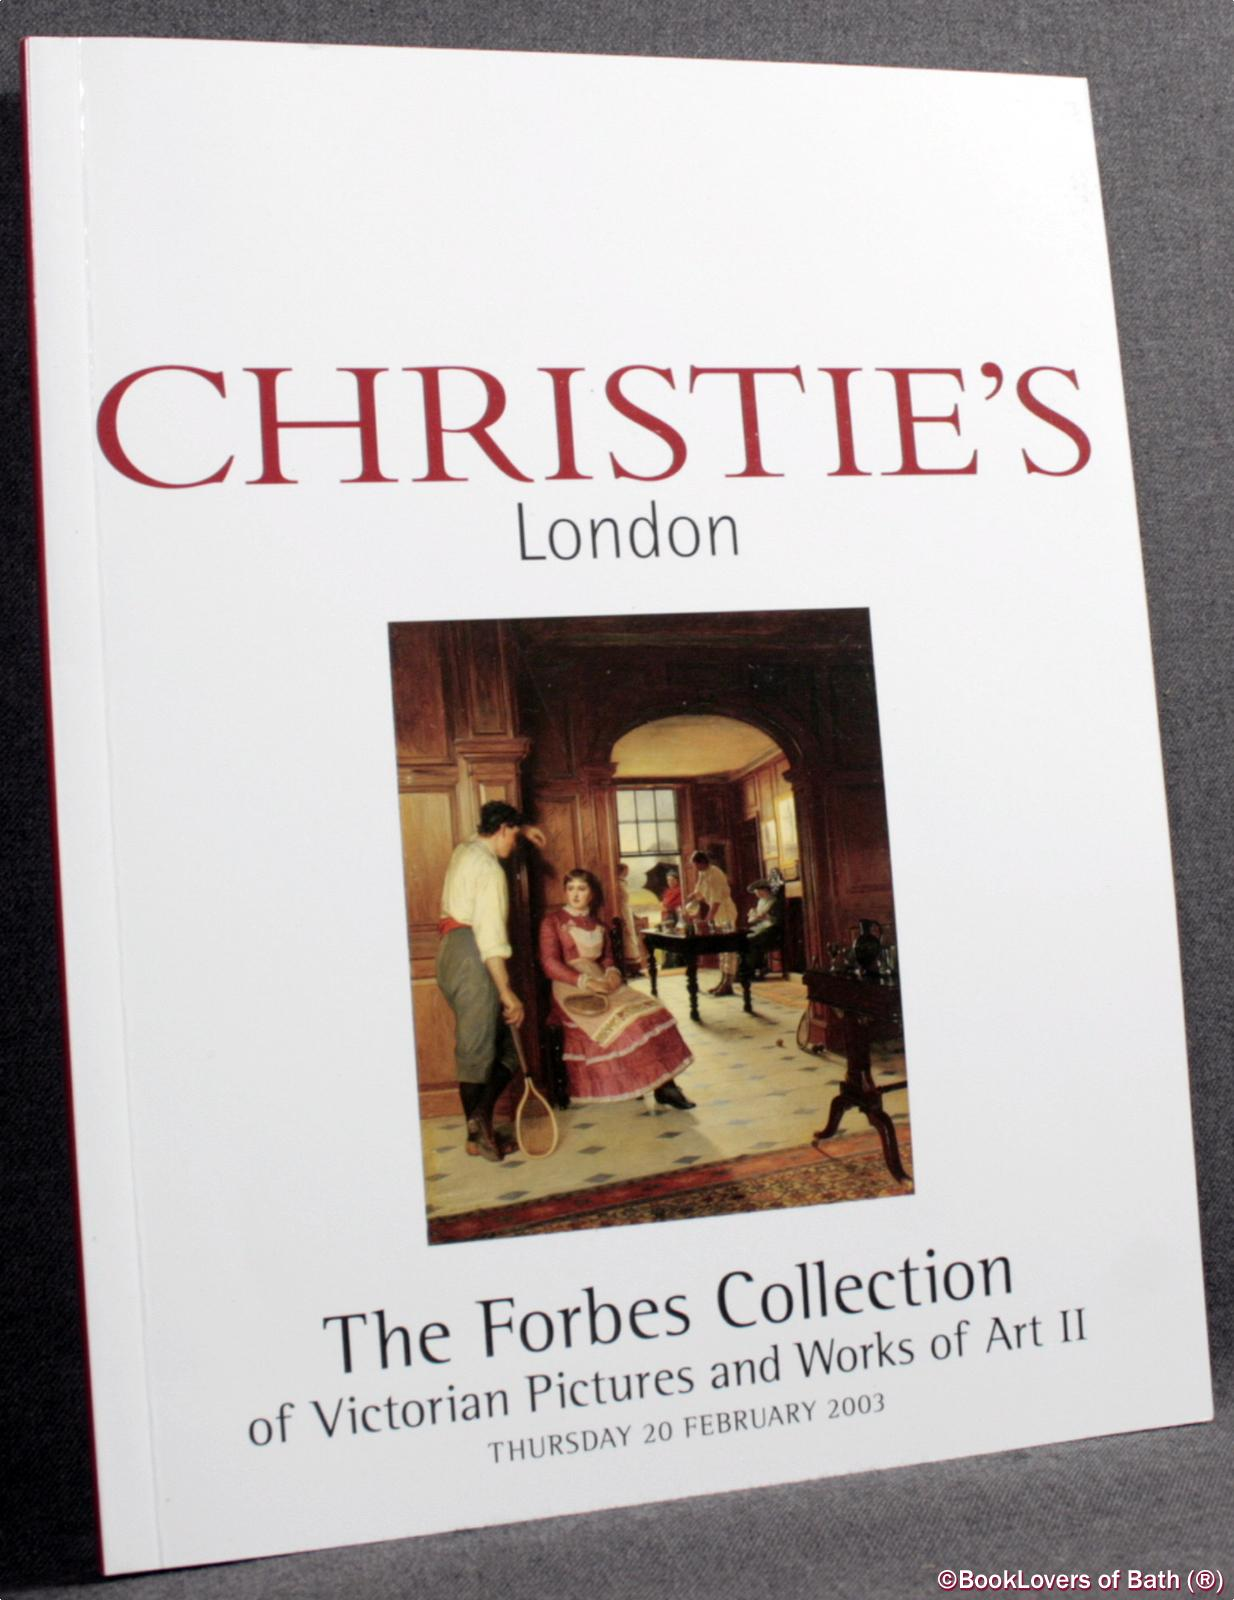 The Forbes Collection of Victorian Pictures and Works of Art Thursday 20 February 2003 - Anon.